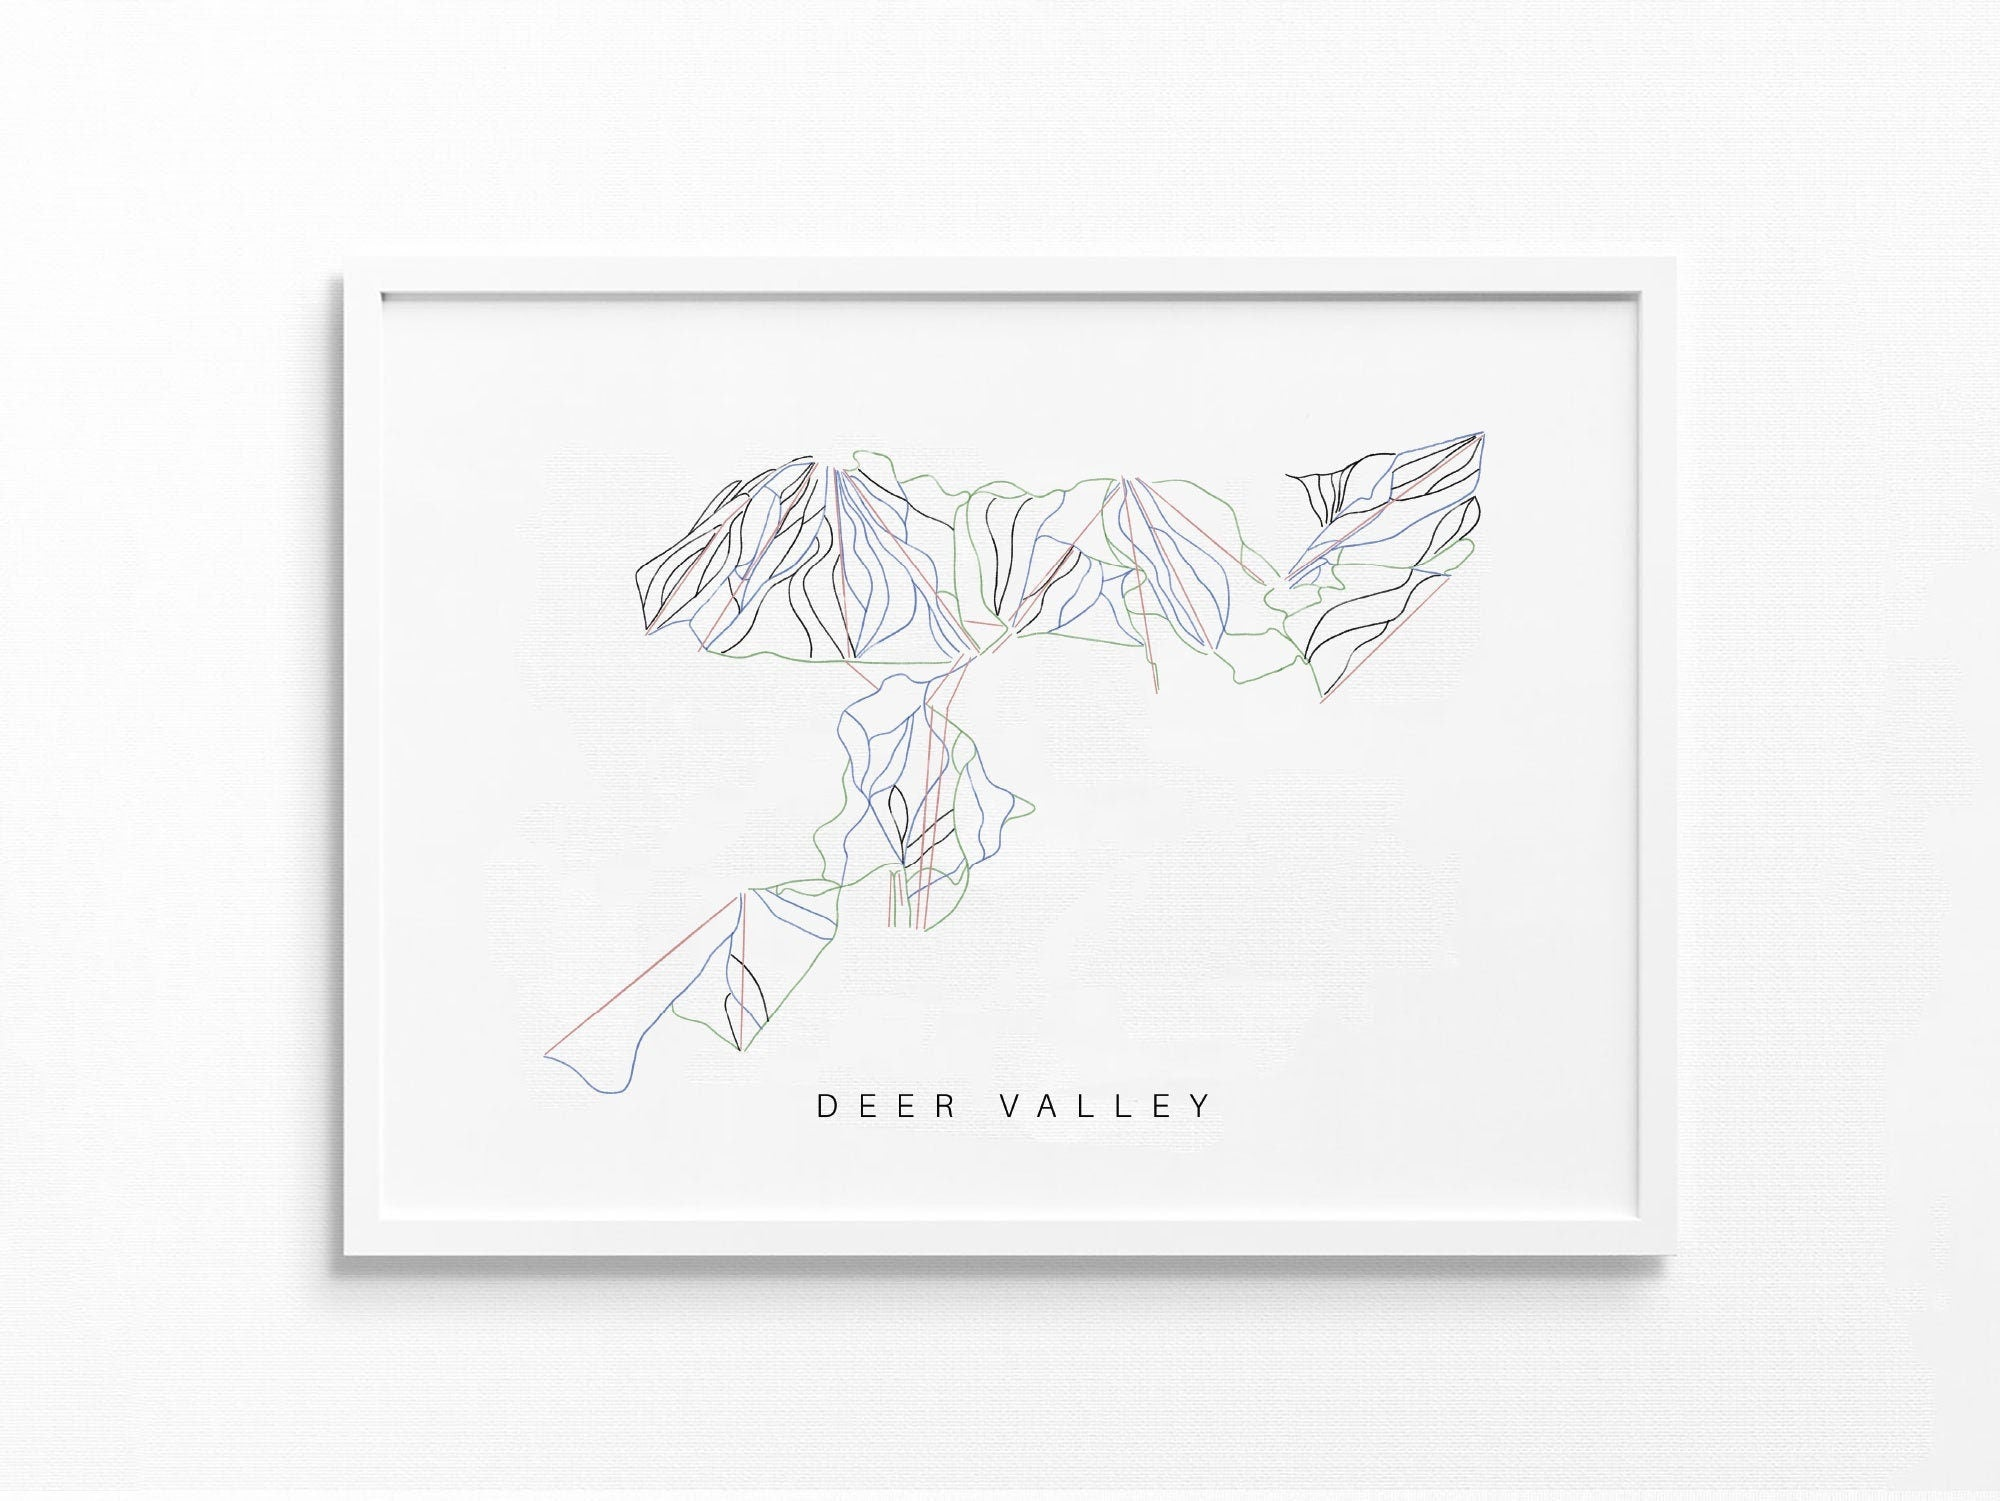 Deer Valley | Park City, UT | Trail Map, Ski Decor Gift, Ski Slopes, Mountain Layout | Minimalist Print UNFRAMED